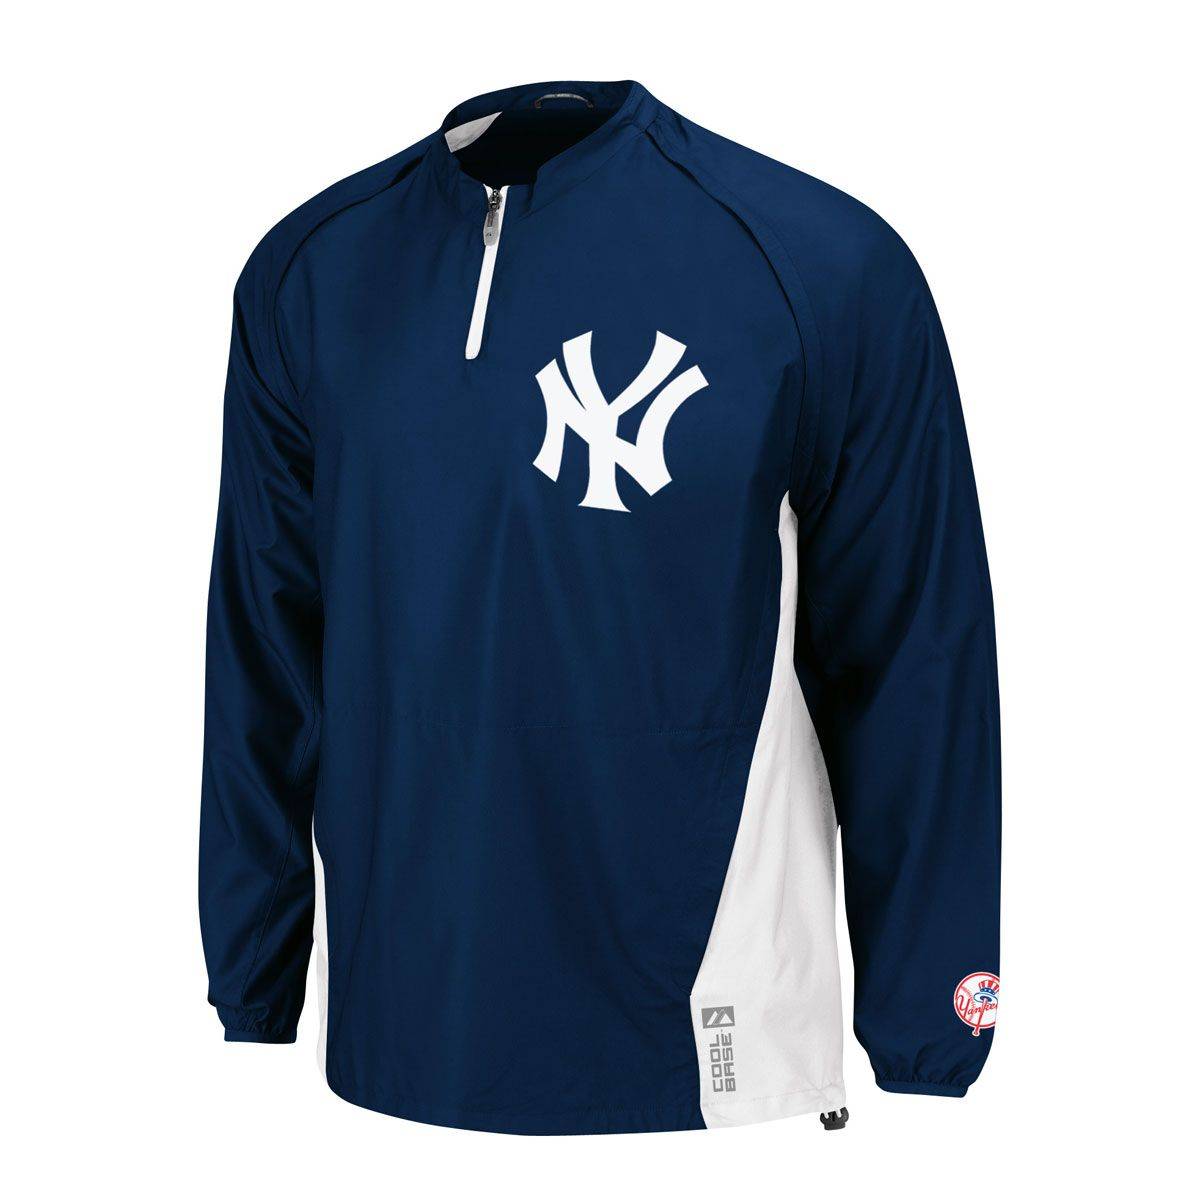 New York Yankees Authentic Cool Base Triple Peak Gamer Mlb Baseball Jacket Home Icejerseys Com Usa Off New York Yankees New York Yankees Logo Mlb Apparel